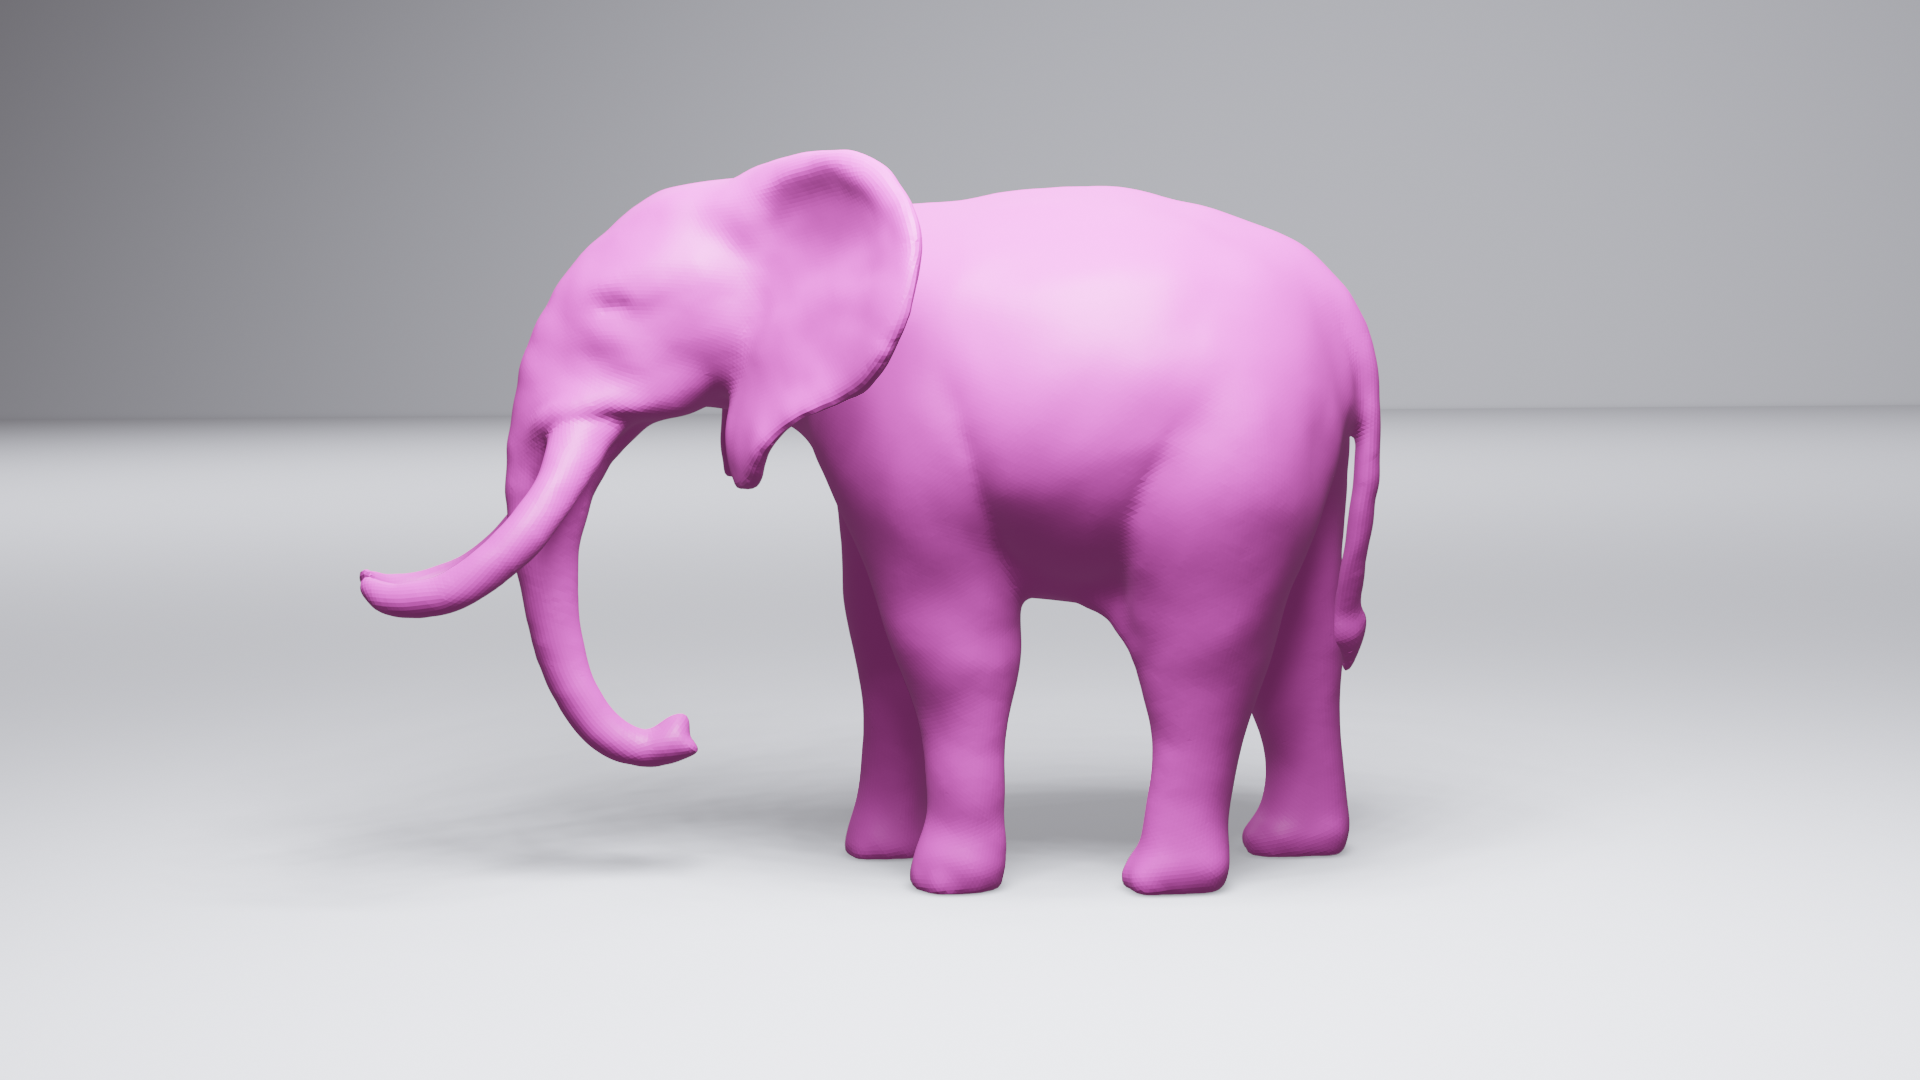 Download Stl File Elephant 3d Printing Object Cults Download free elephant png images. cults 3d